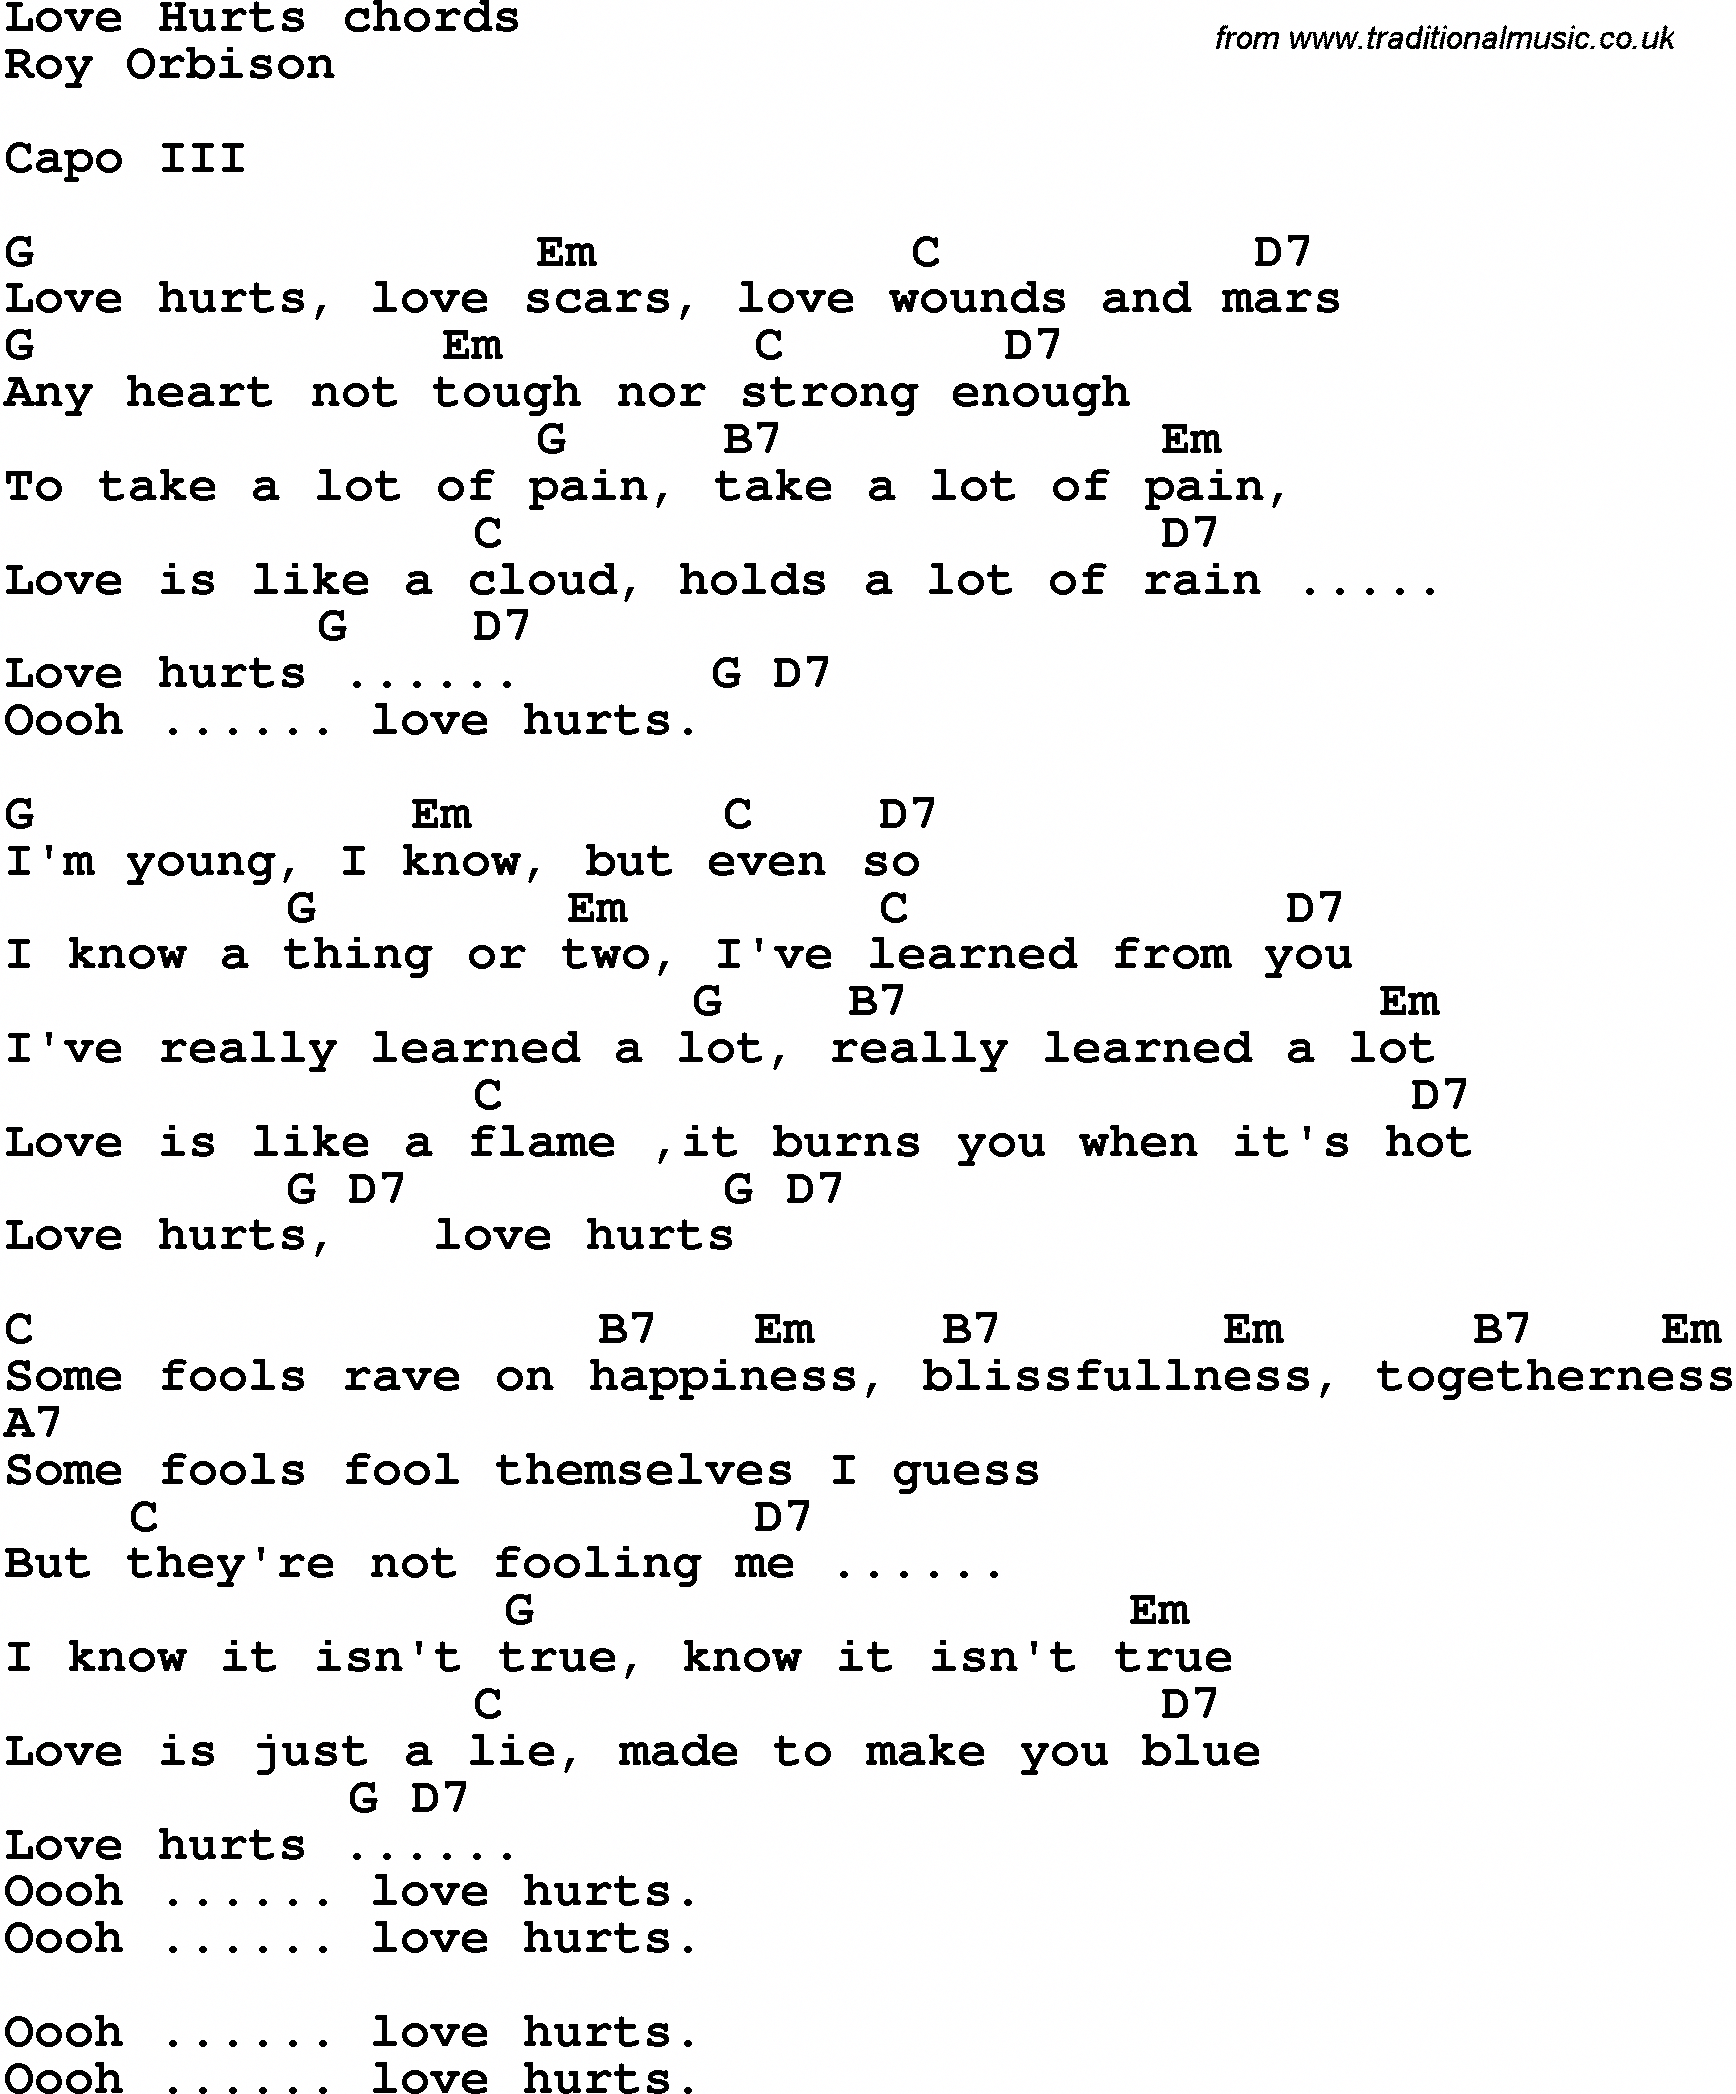 Song Lyrics With Guitar Chords For Love Hurts Roy Orbison Guitarchords Guitar Chords And Lyrics Guitar Chords For Songs Easy Guitar Songs